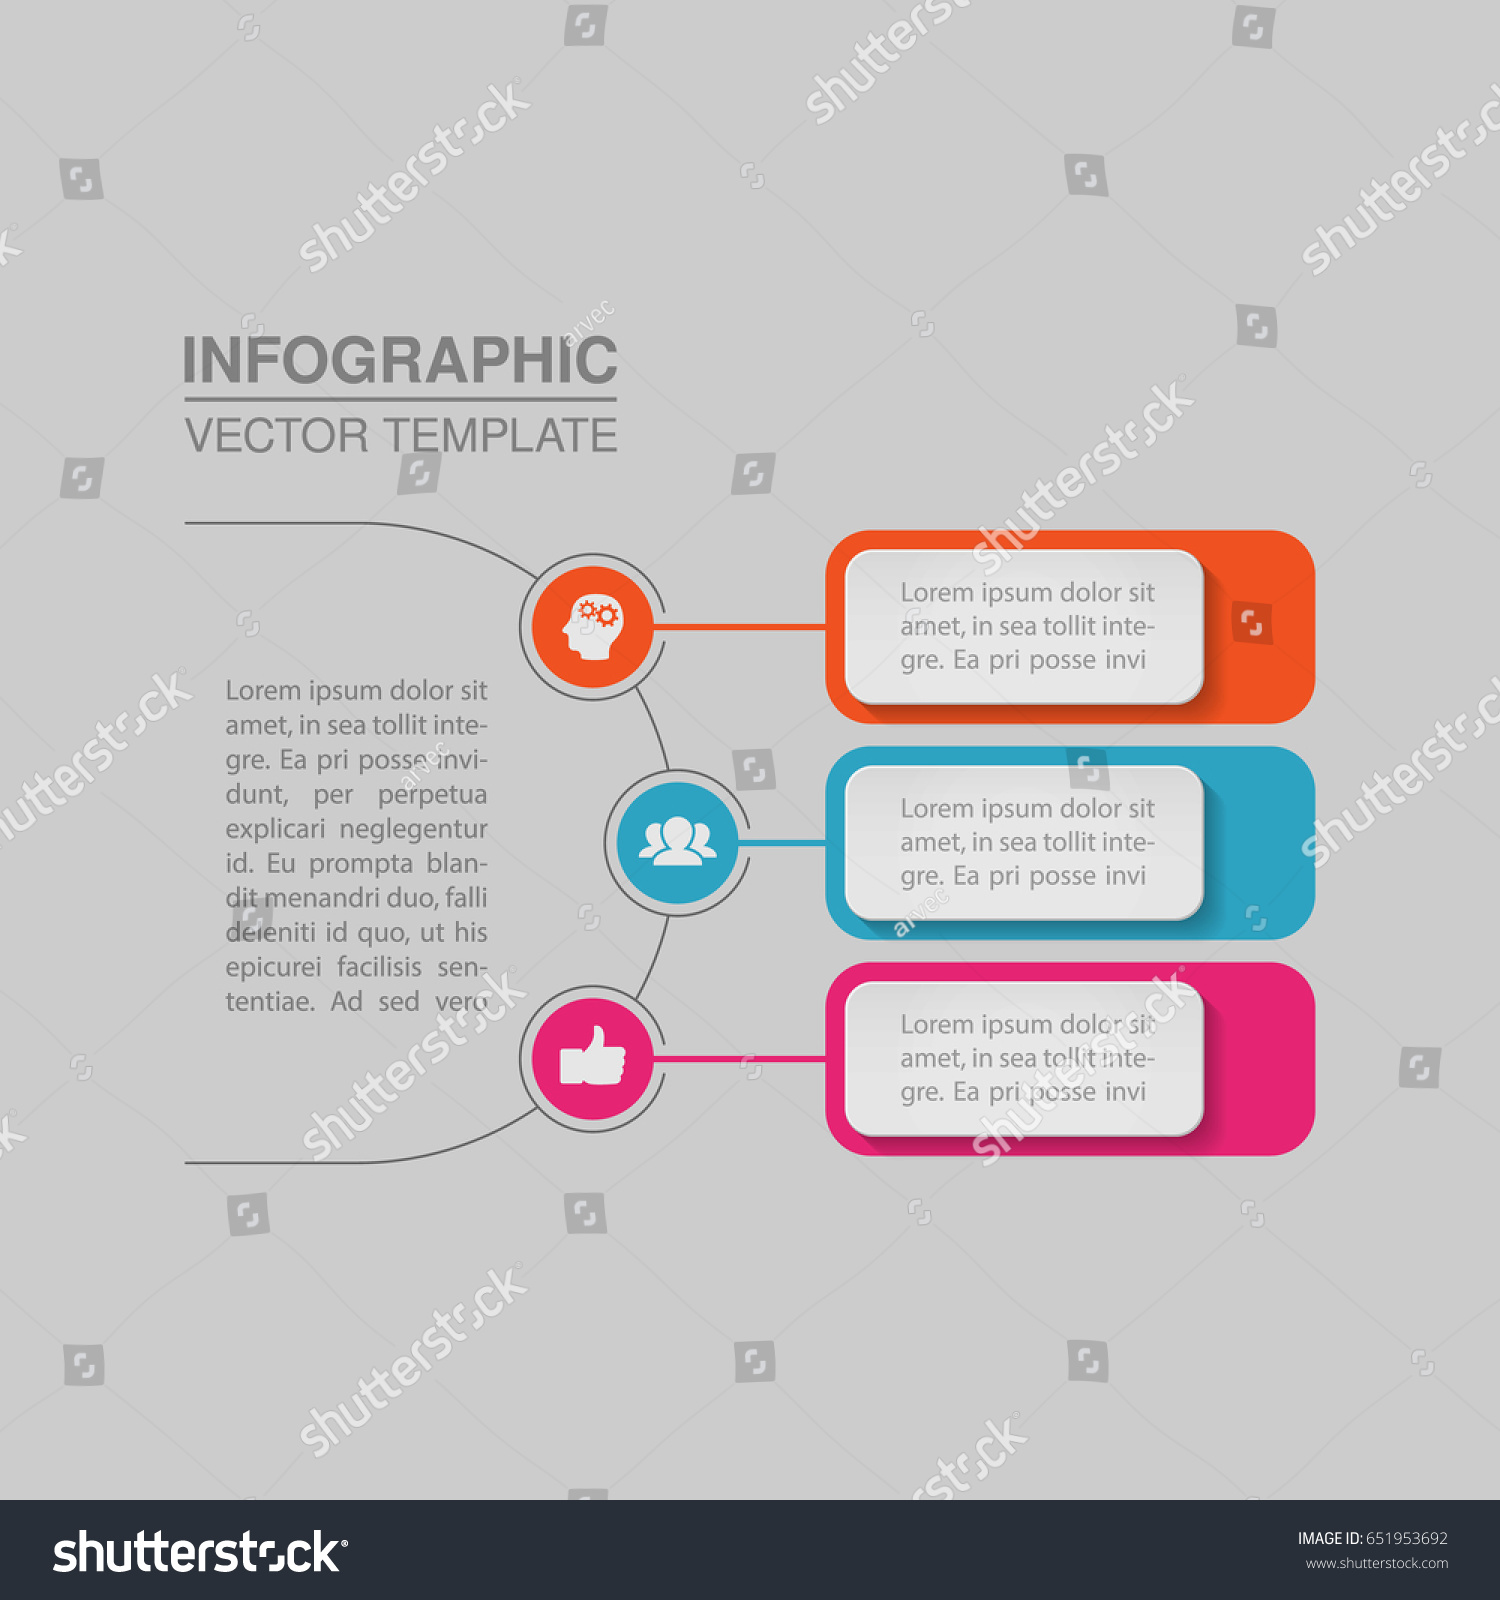 Delighted Template Diagram Images - Everything You Need to Know ...